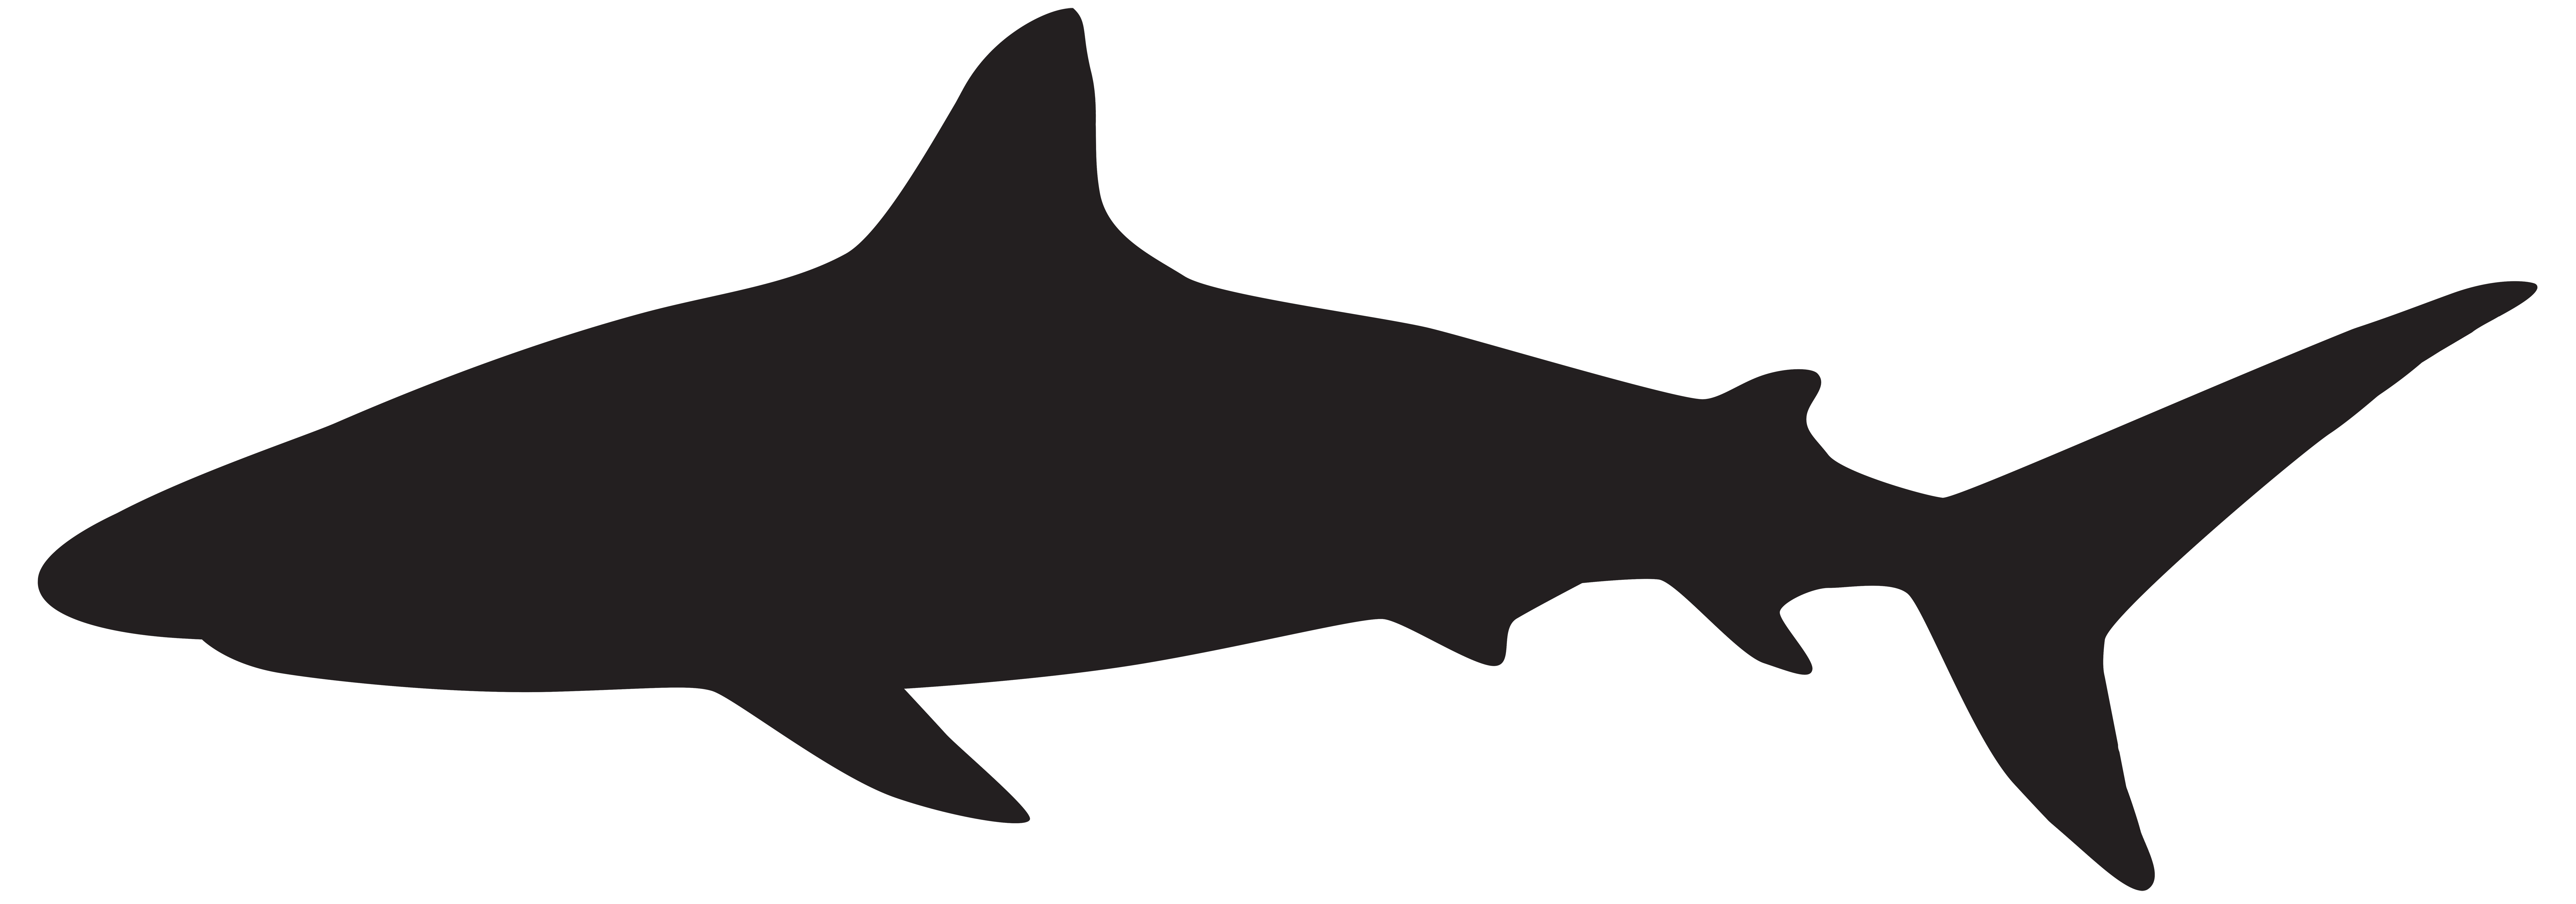 Pin By Jasmine Colon On Projects To Try Shark Silhouette Silhouette Png Shark Images